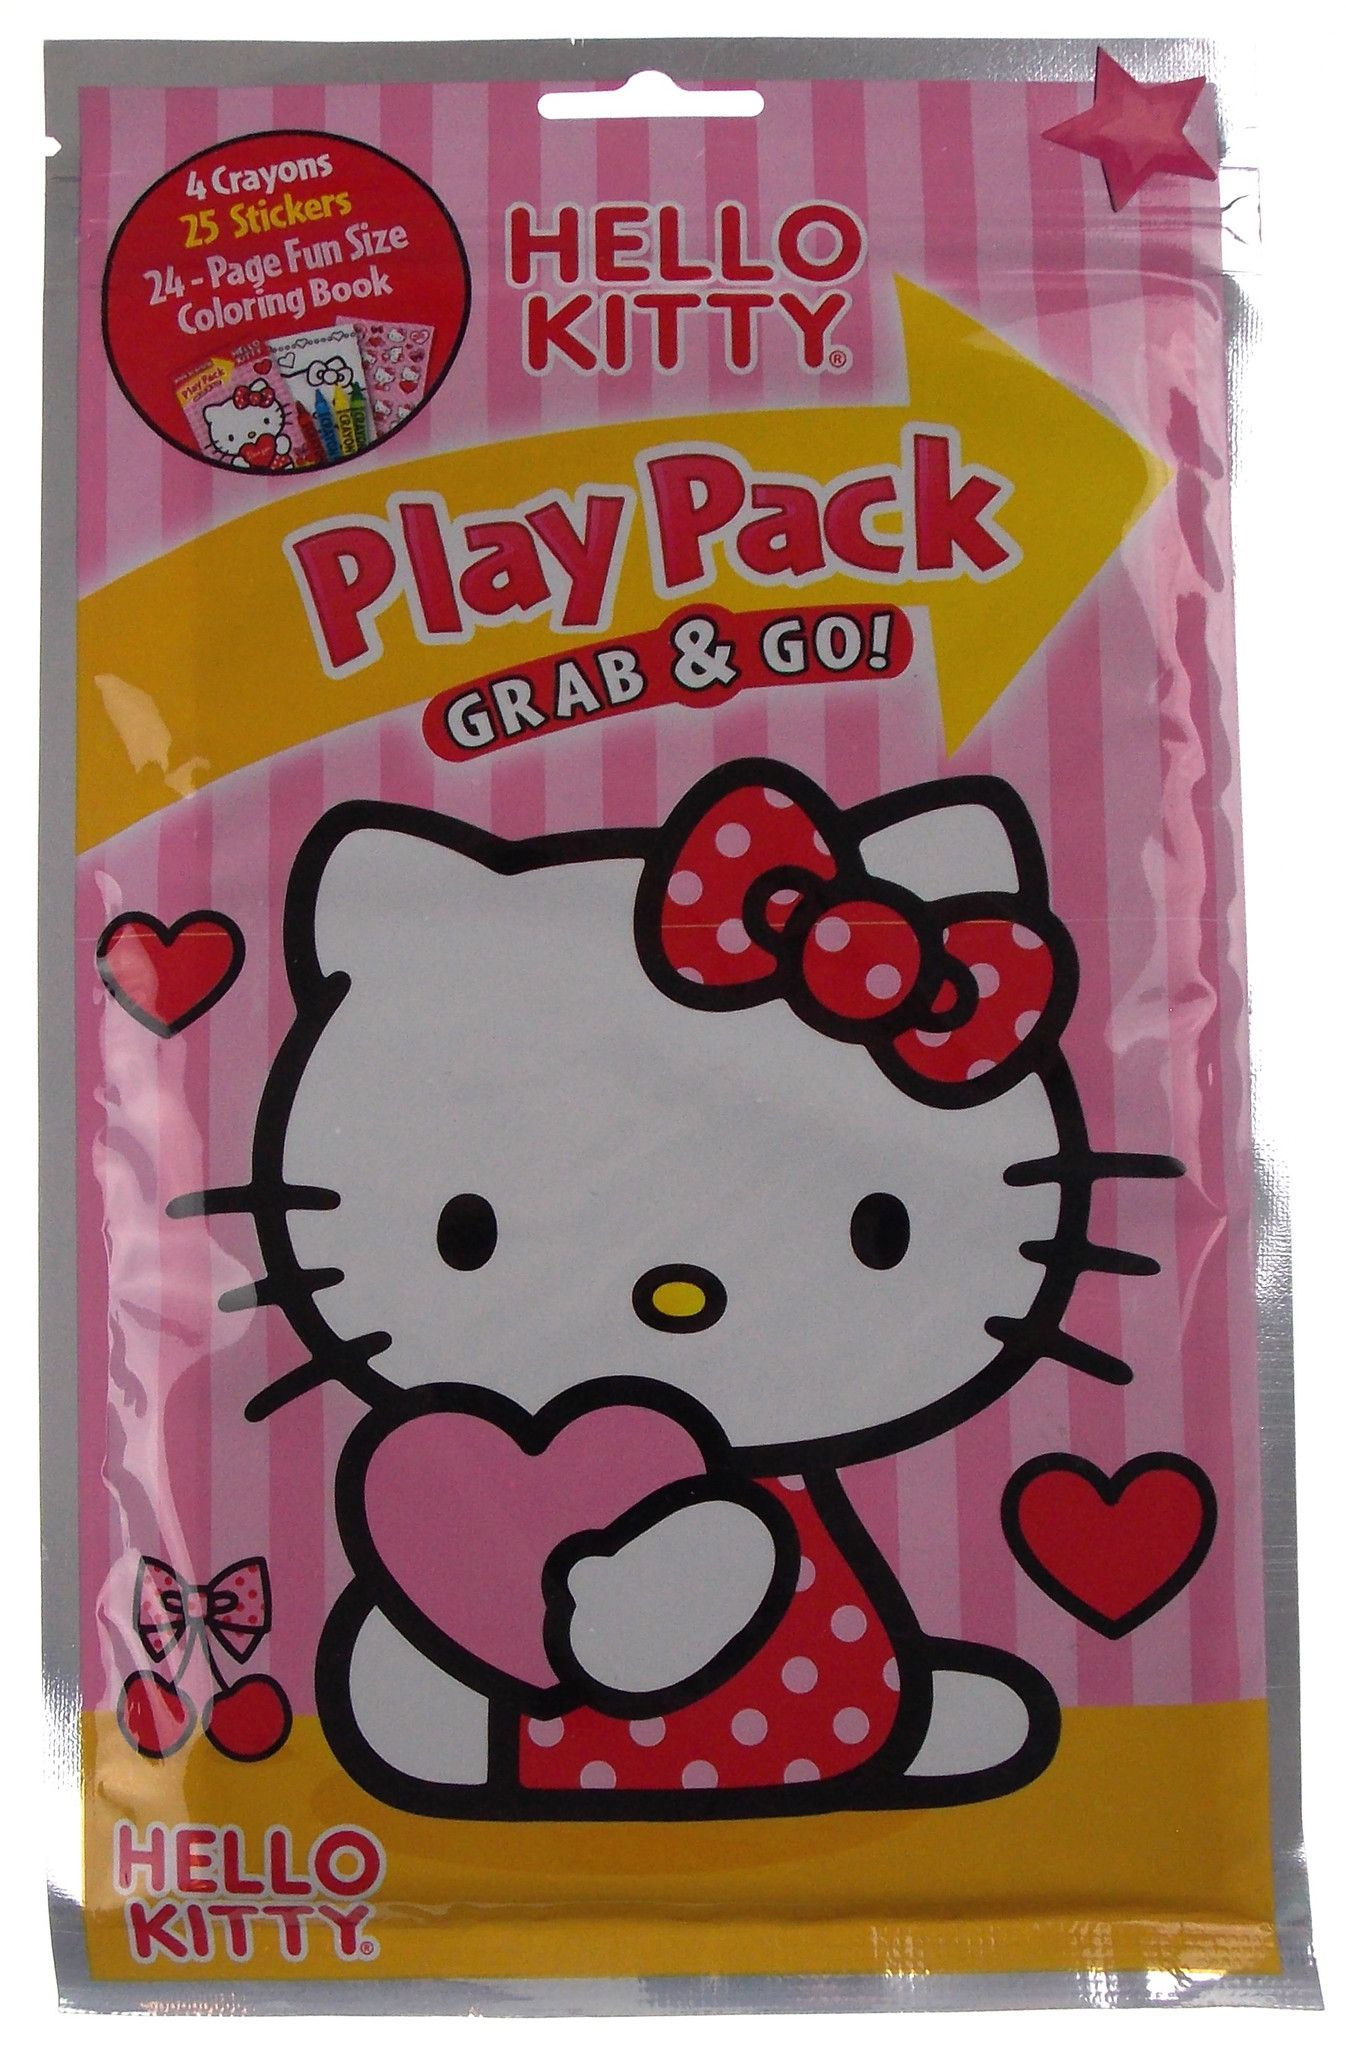 d1d84605d Hasbro Play Pack Grab & Go Hello Kitty Set of 12 Play Packs Party and